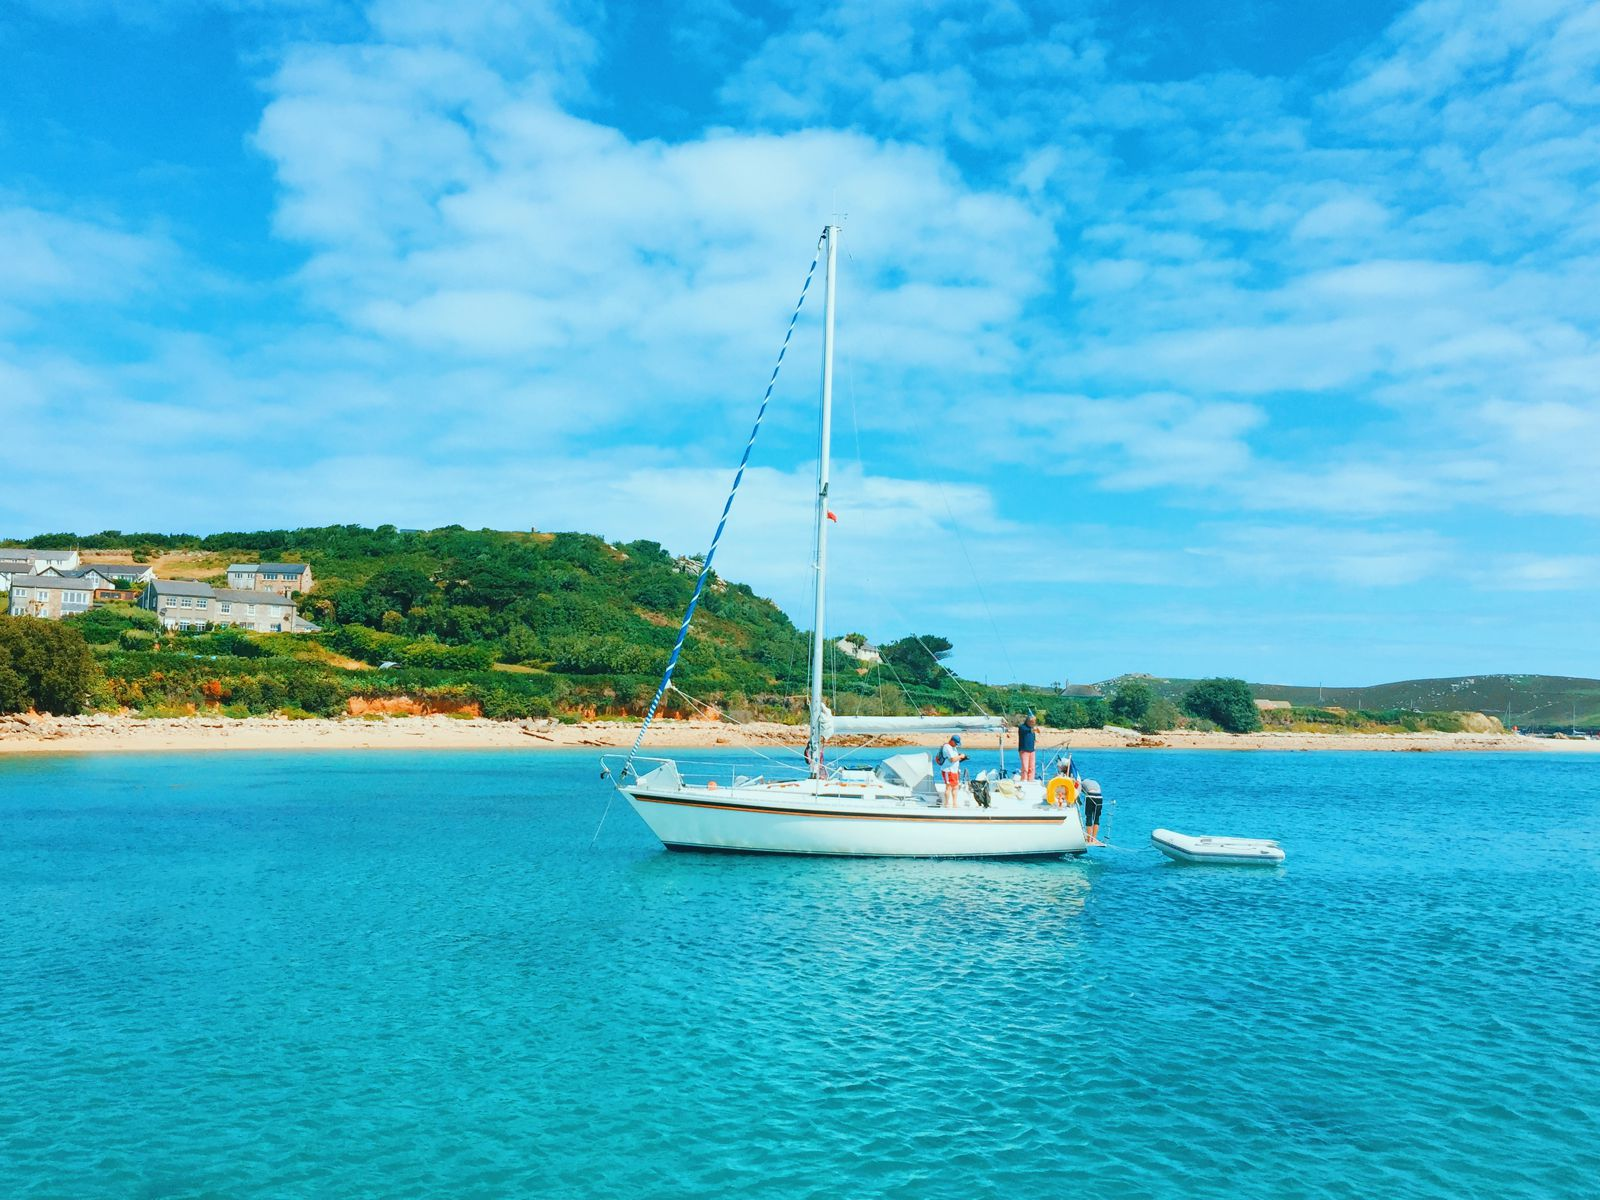 More Photos From The Isles Of Scilly... (11)